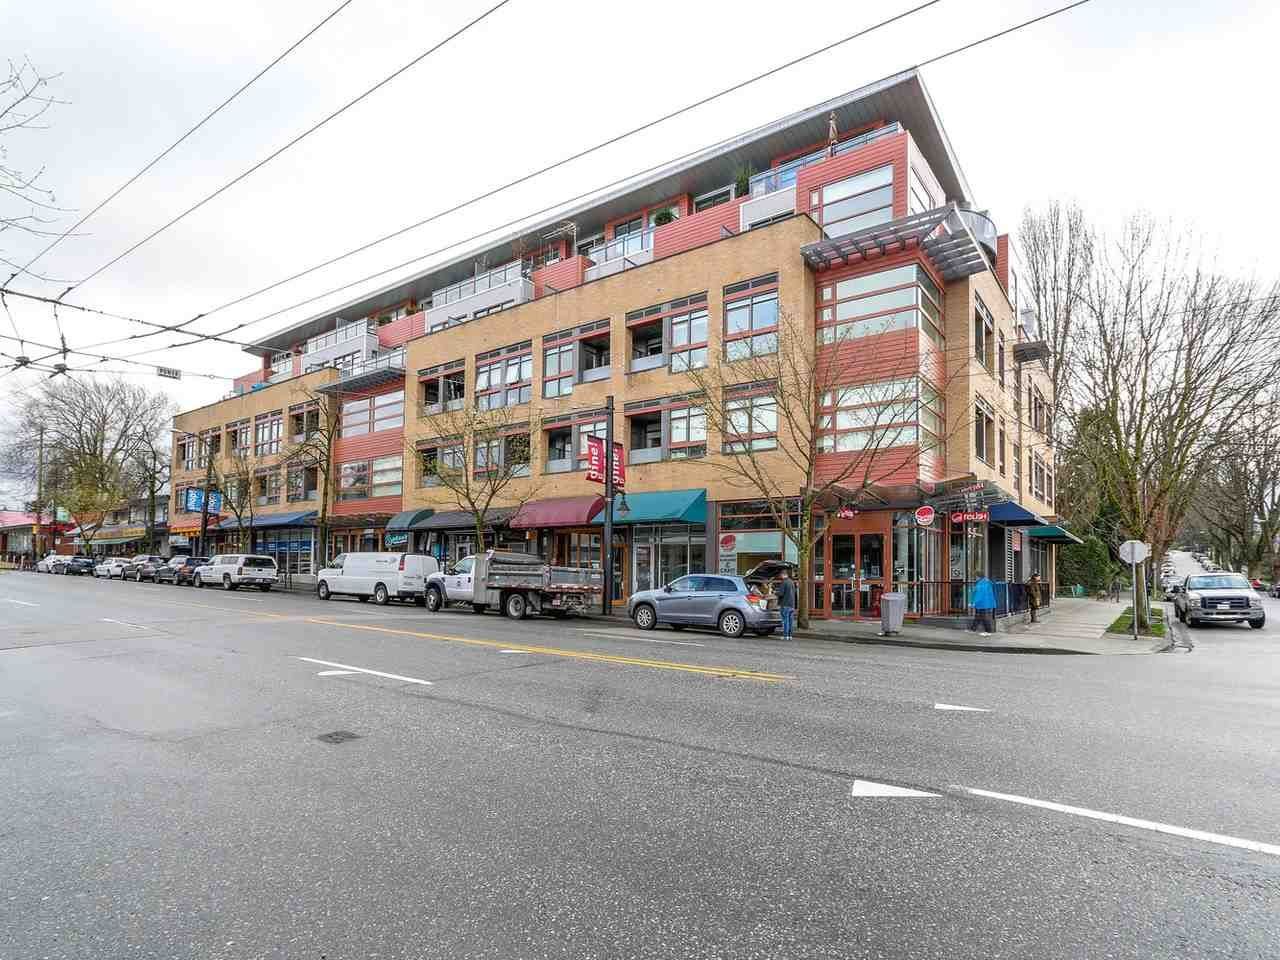 """Main Photo: 314 2250 COMMERCIAL Drive in Vancouver: Grandview VE Condo for sale in """"Marquee on Commercial"""" (Vancouver East)  : MLS®# R2154734"""